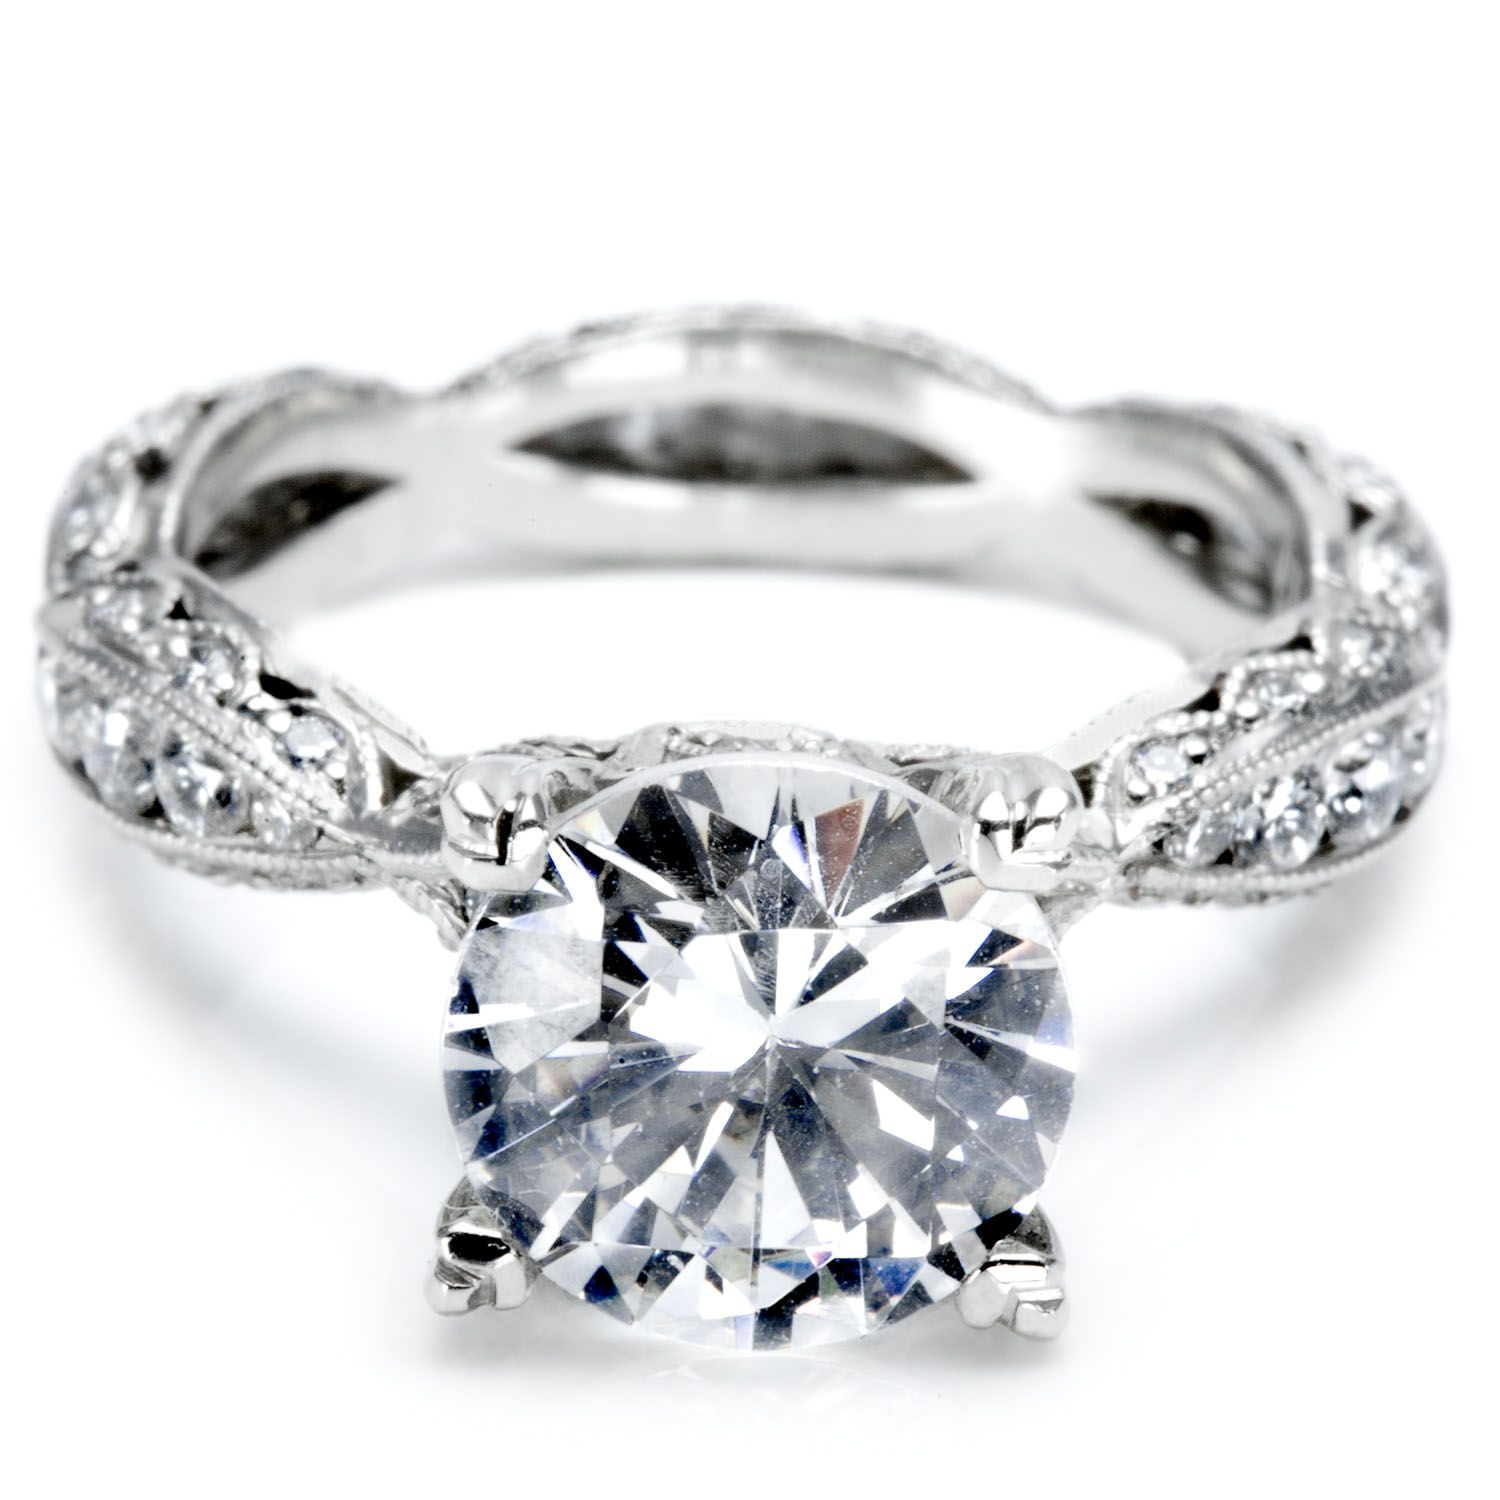 Factors that Go Into the Price of an Engagement Ring At Last